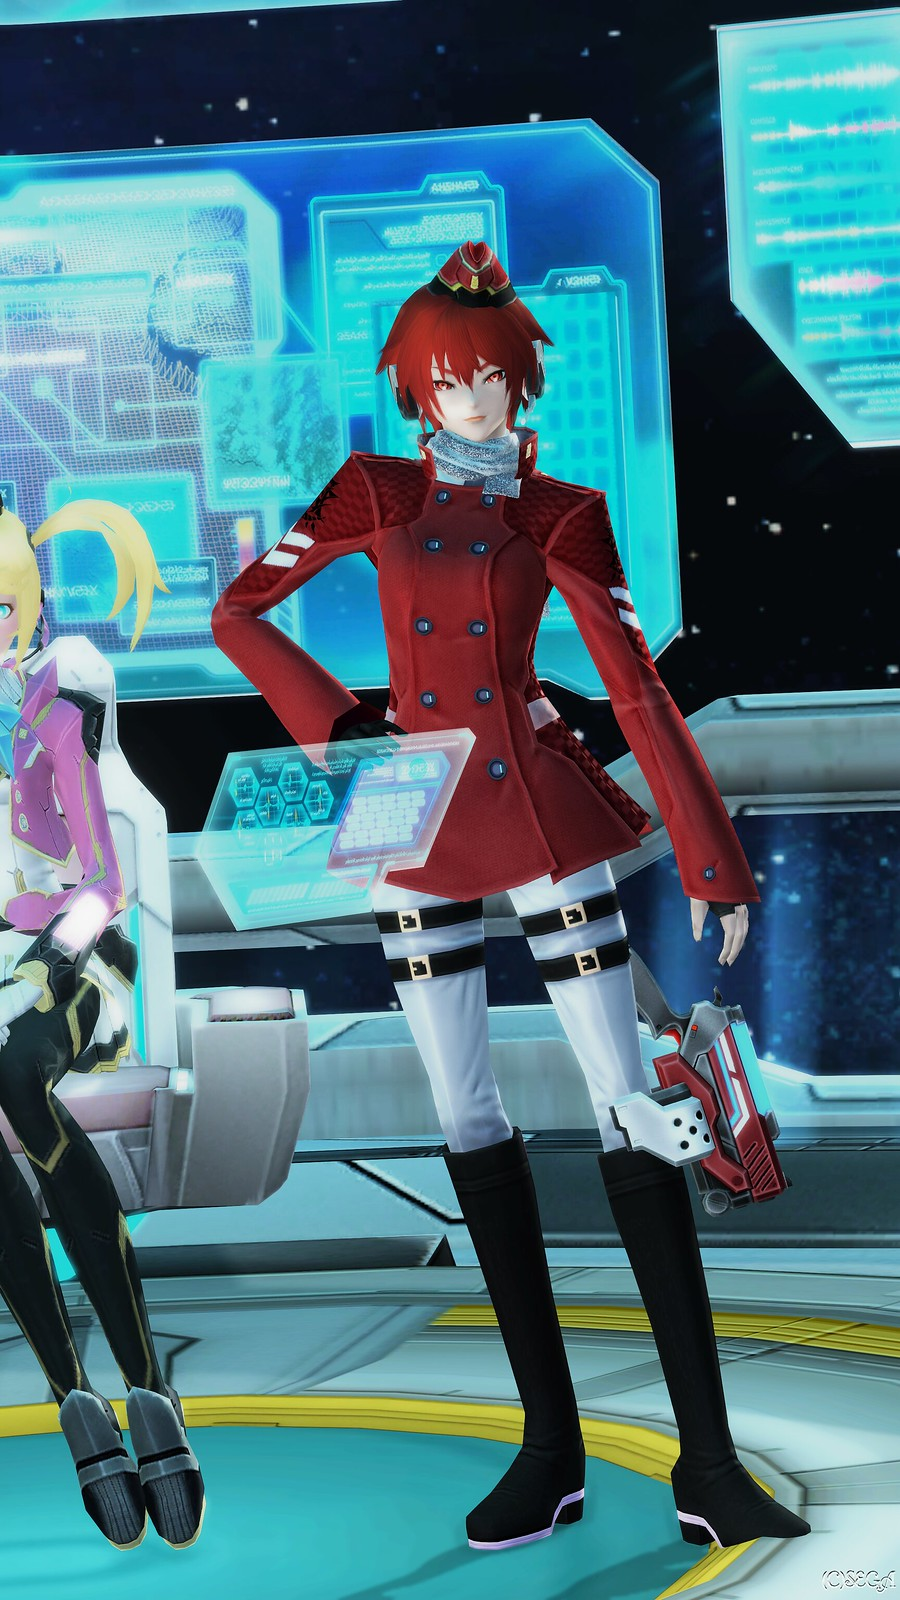 Phantasy Star Online 2 Screenshot 2020.12.31 - 16.01.17.50